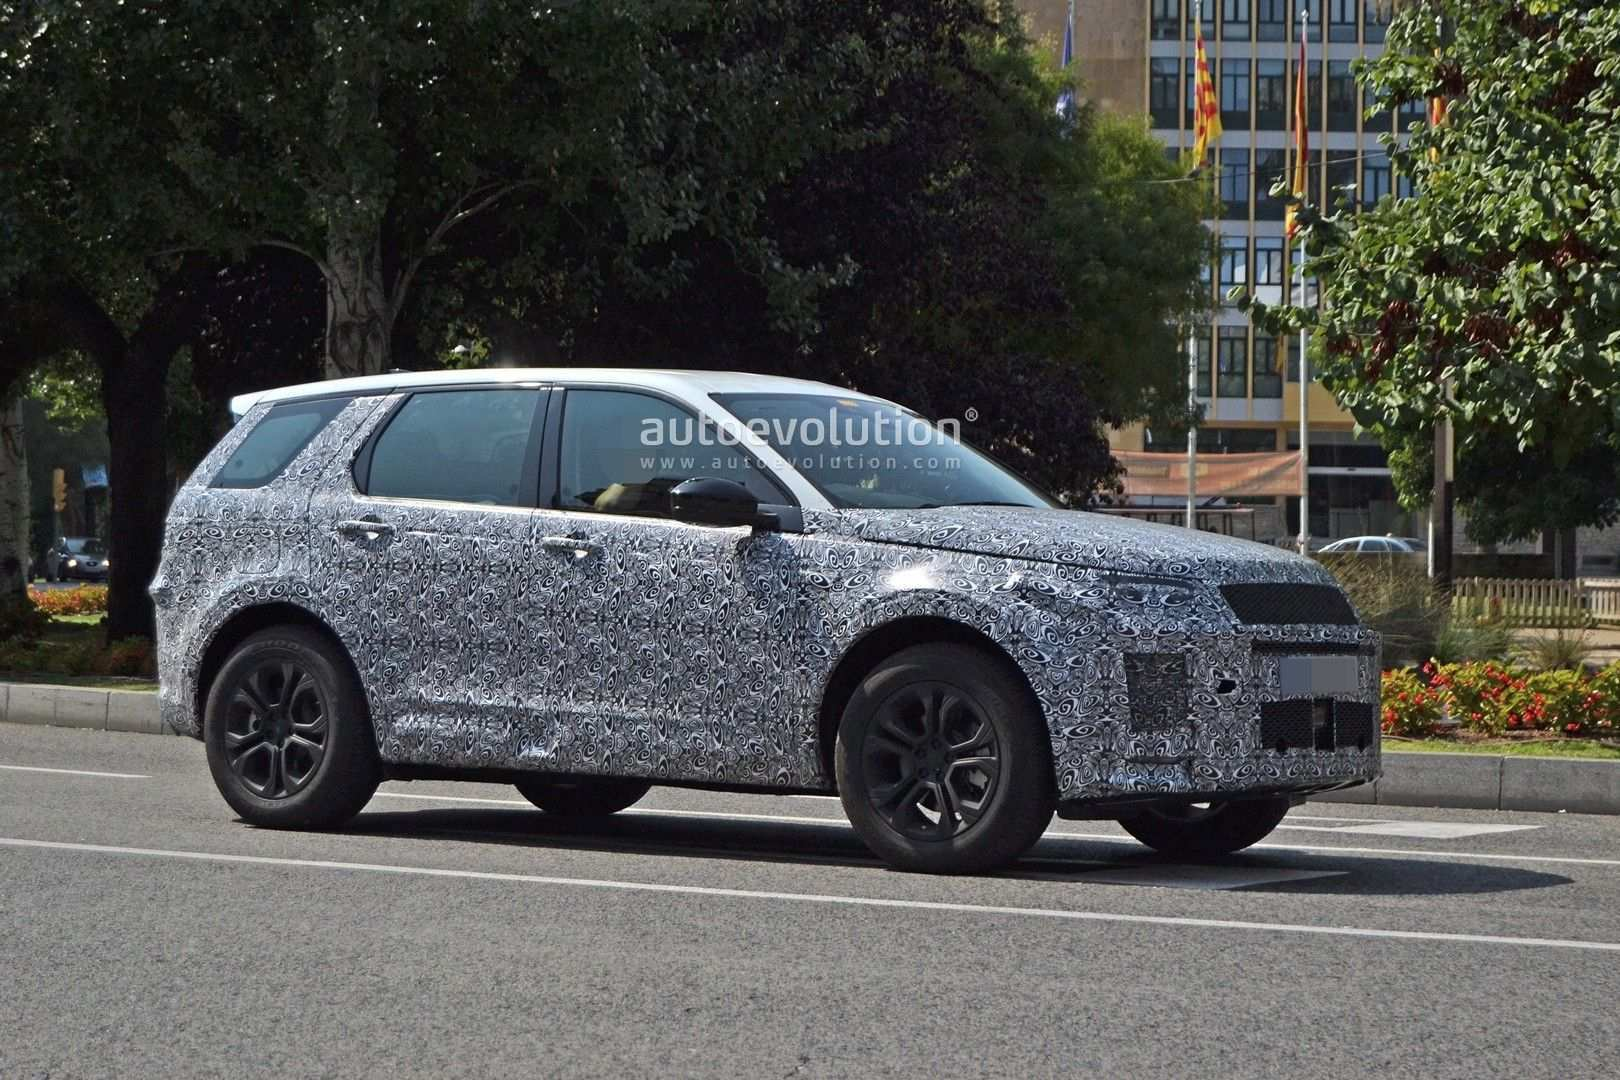 66 All New 2020 Land Rover Discovery Sport Rumors with 2020 Land Rover Discovery Sport